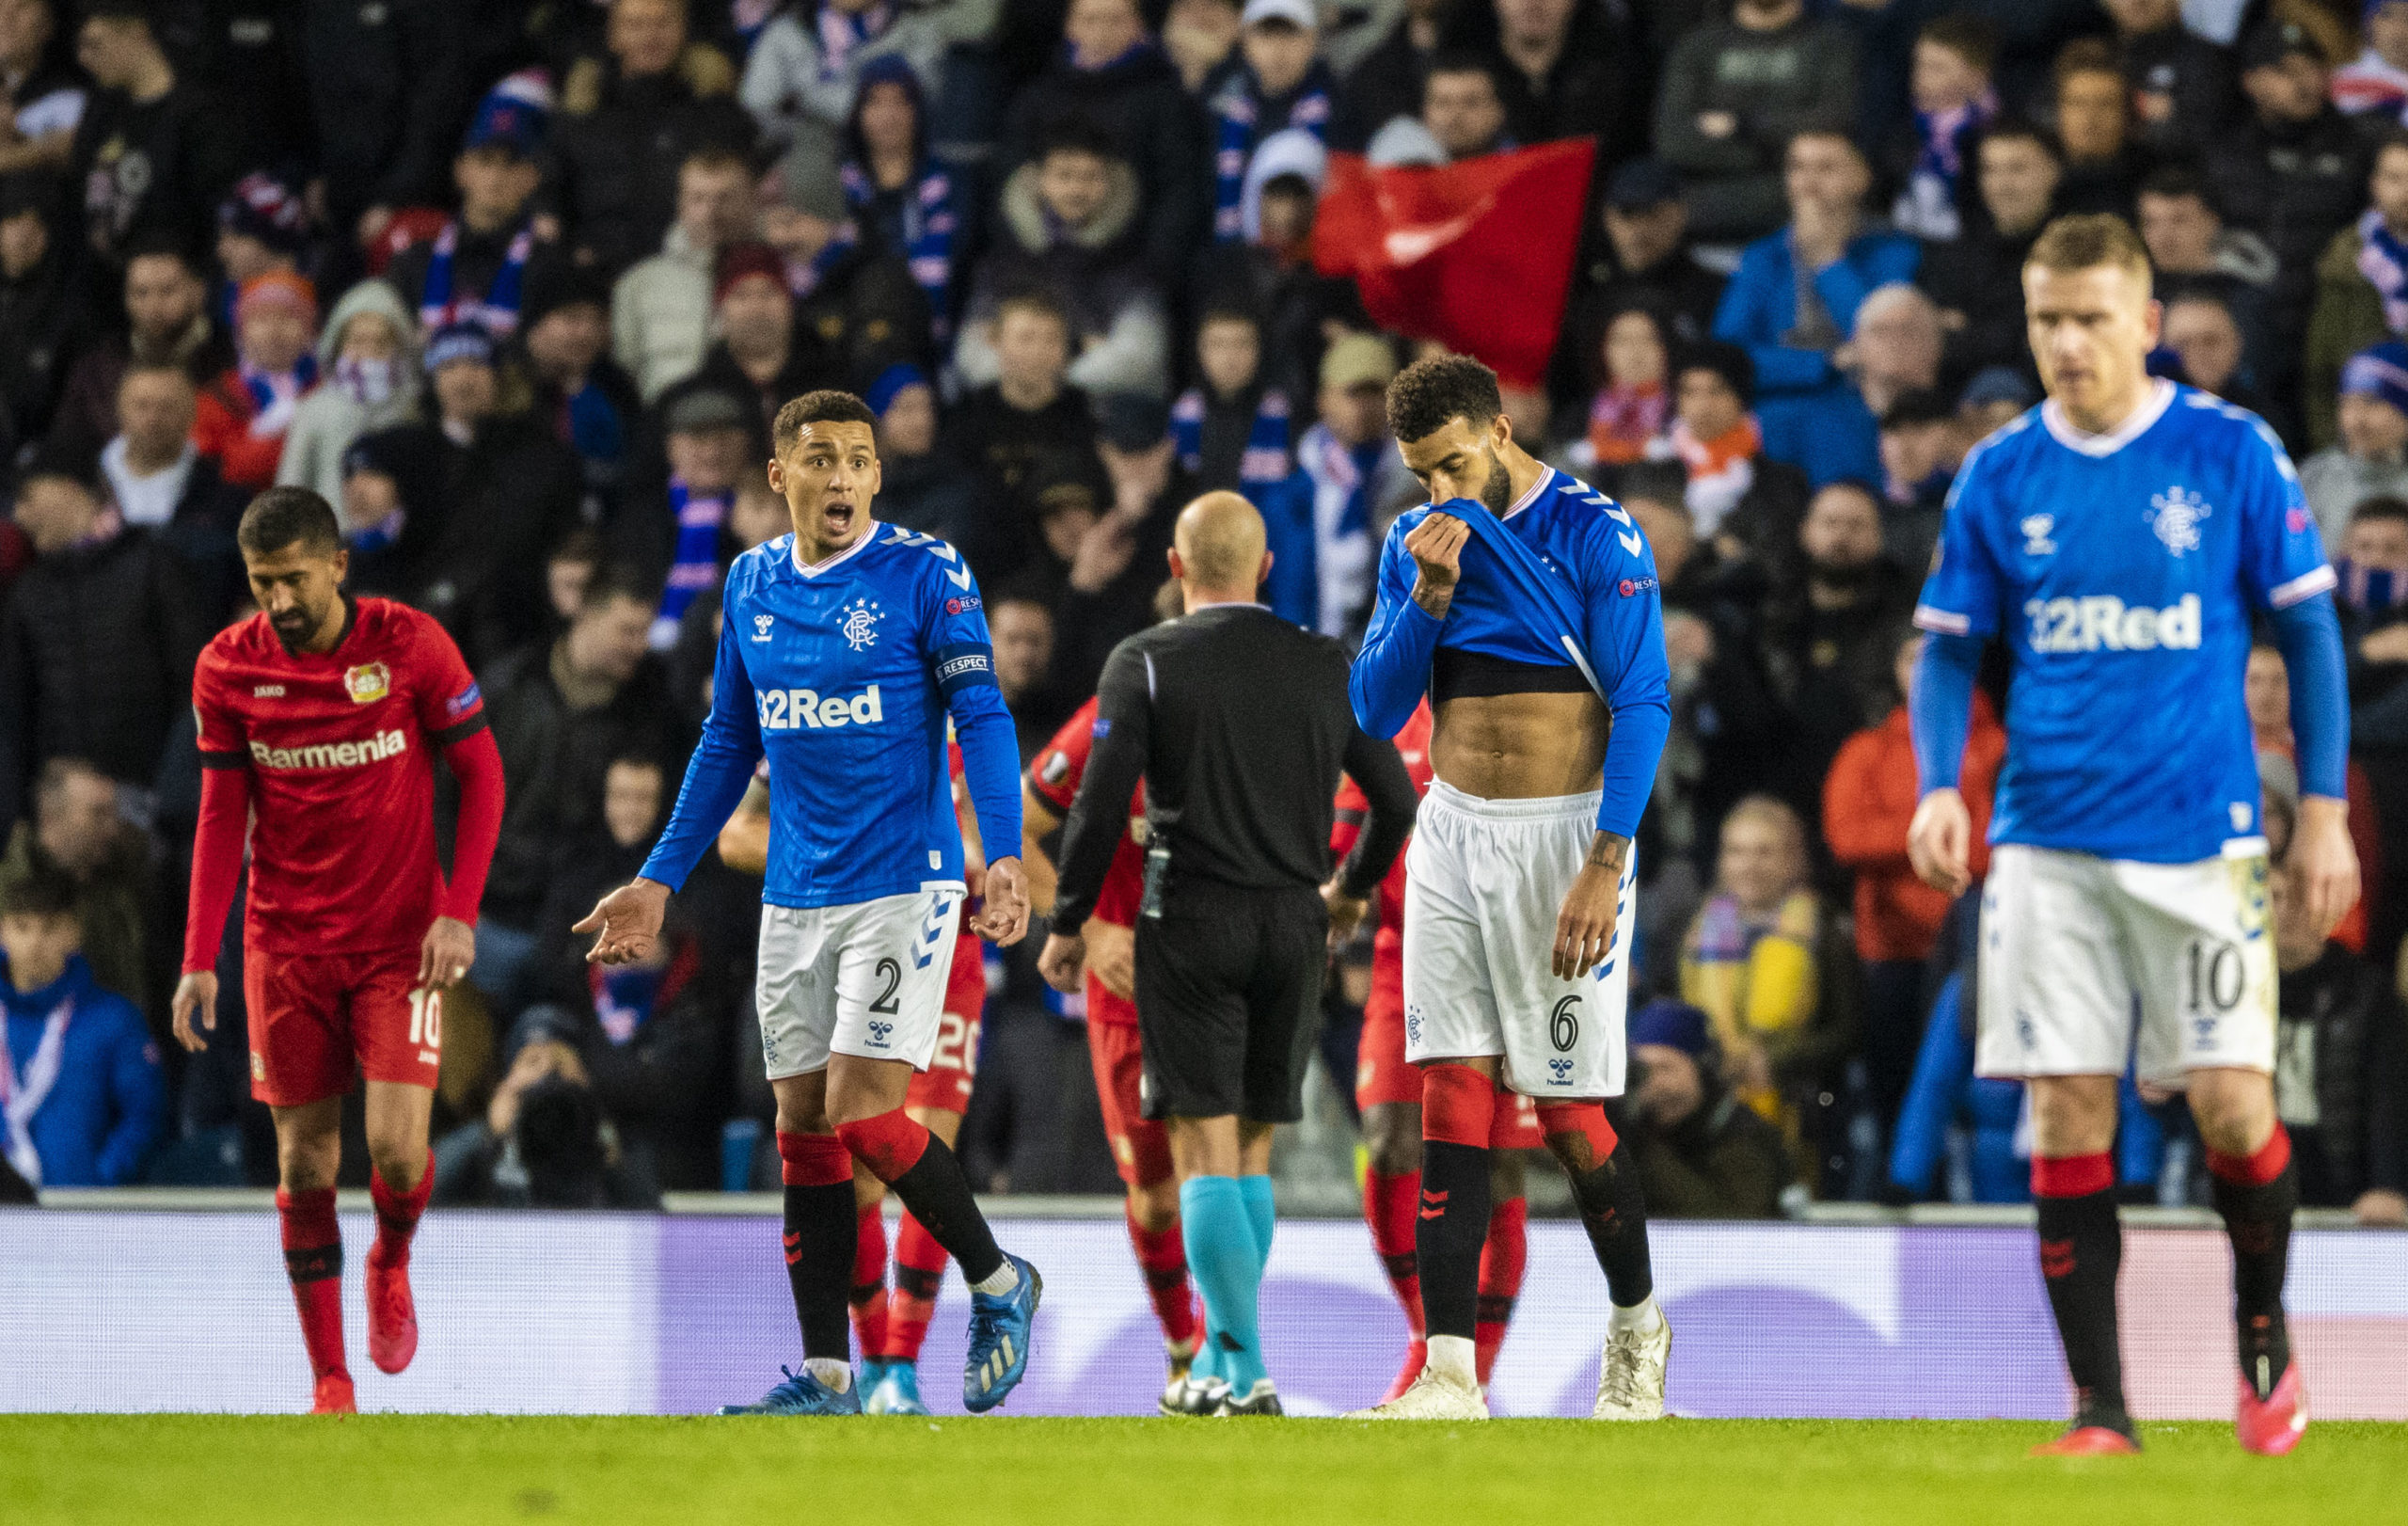 Rangers' Europa League match against Bayer Leverkusen was the last football match played in Scotland